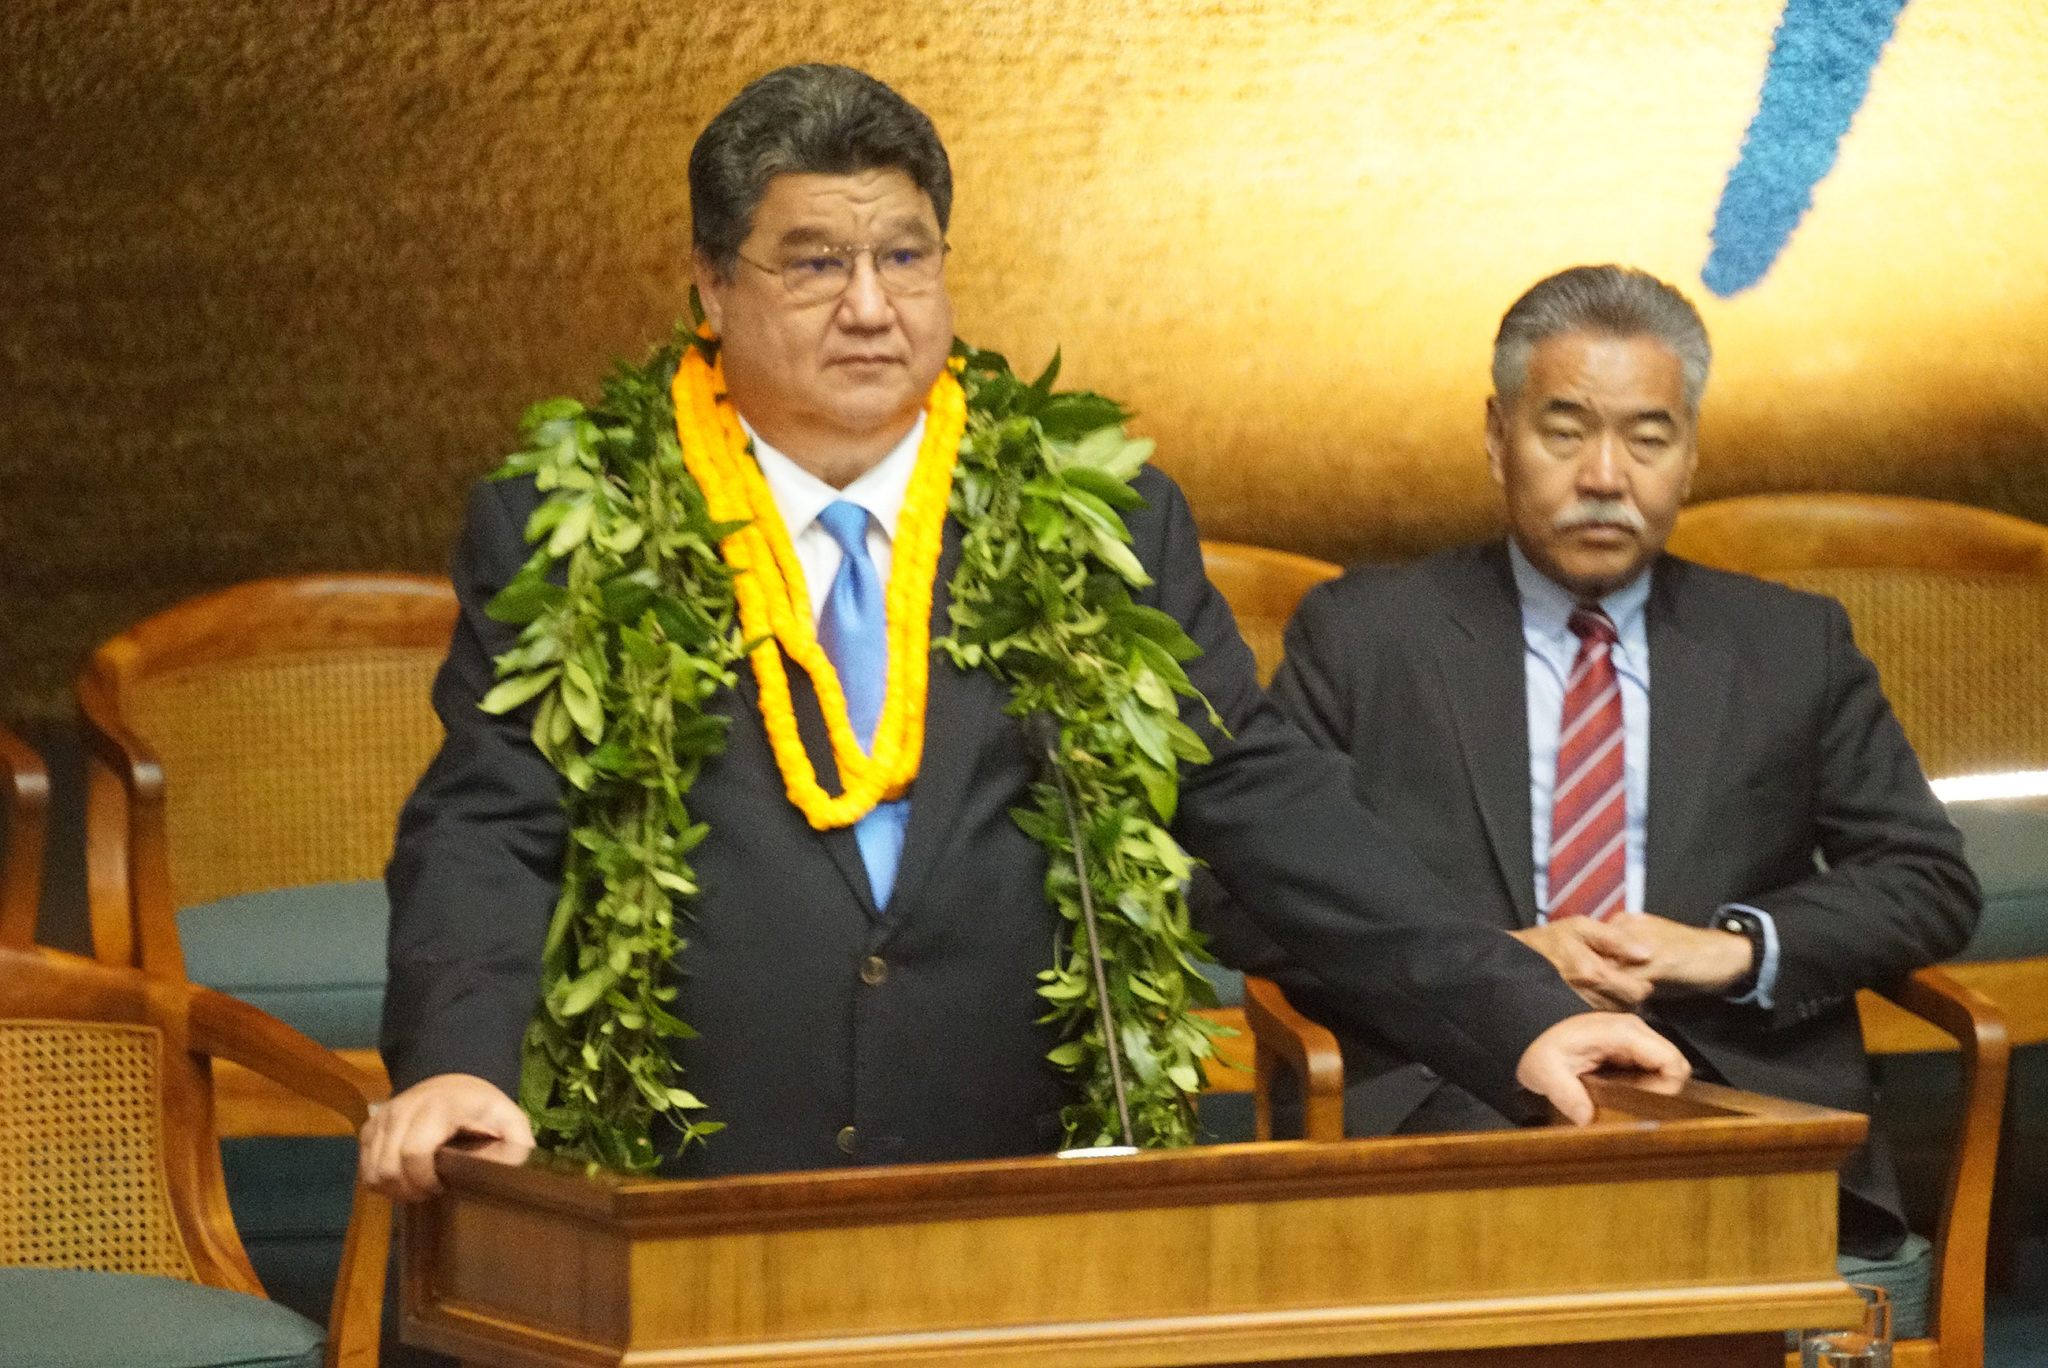 <p>Senate President Ron Kouchi with Gov. Ige were on hand as the Senate convened. Kouchi talked mostly about education while Ige was still fielding questions about Saturday&#8217;s false missile alarm.</p>